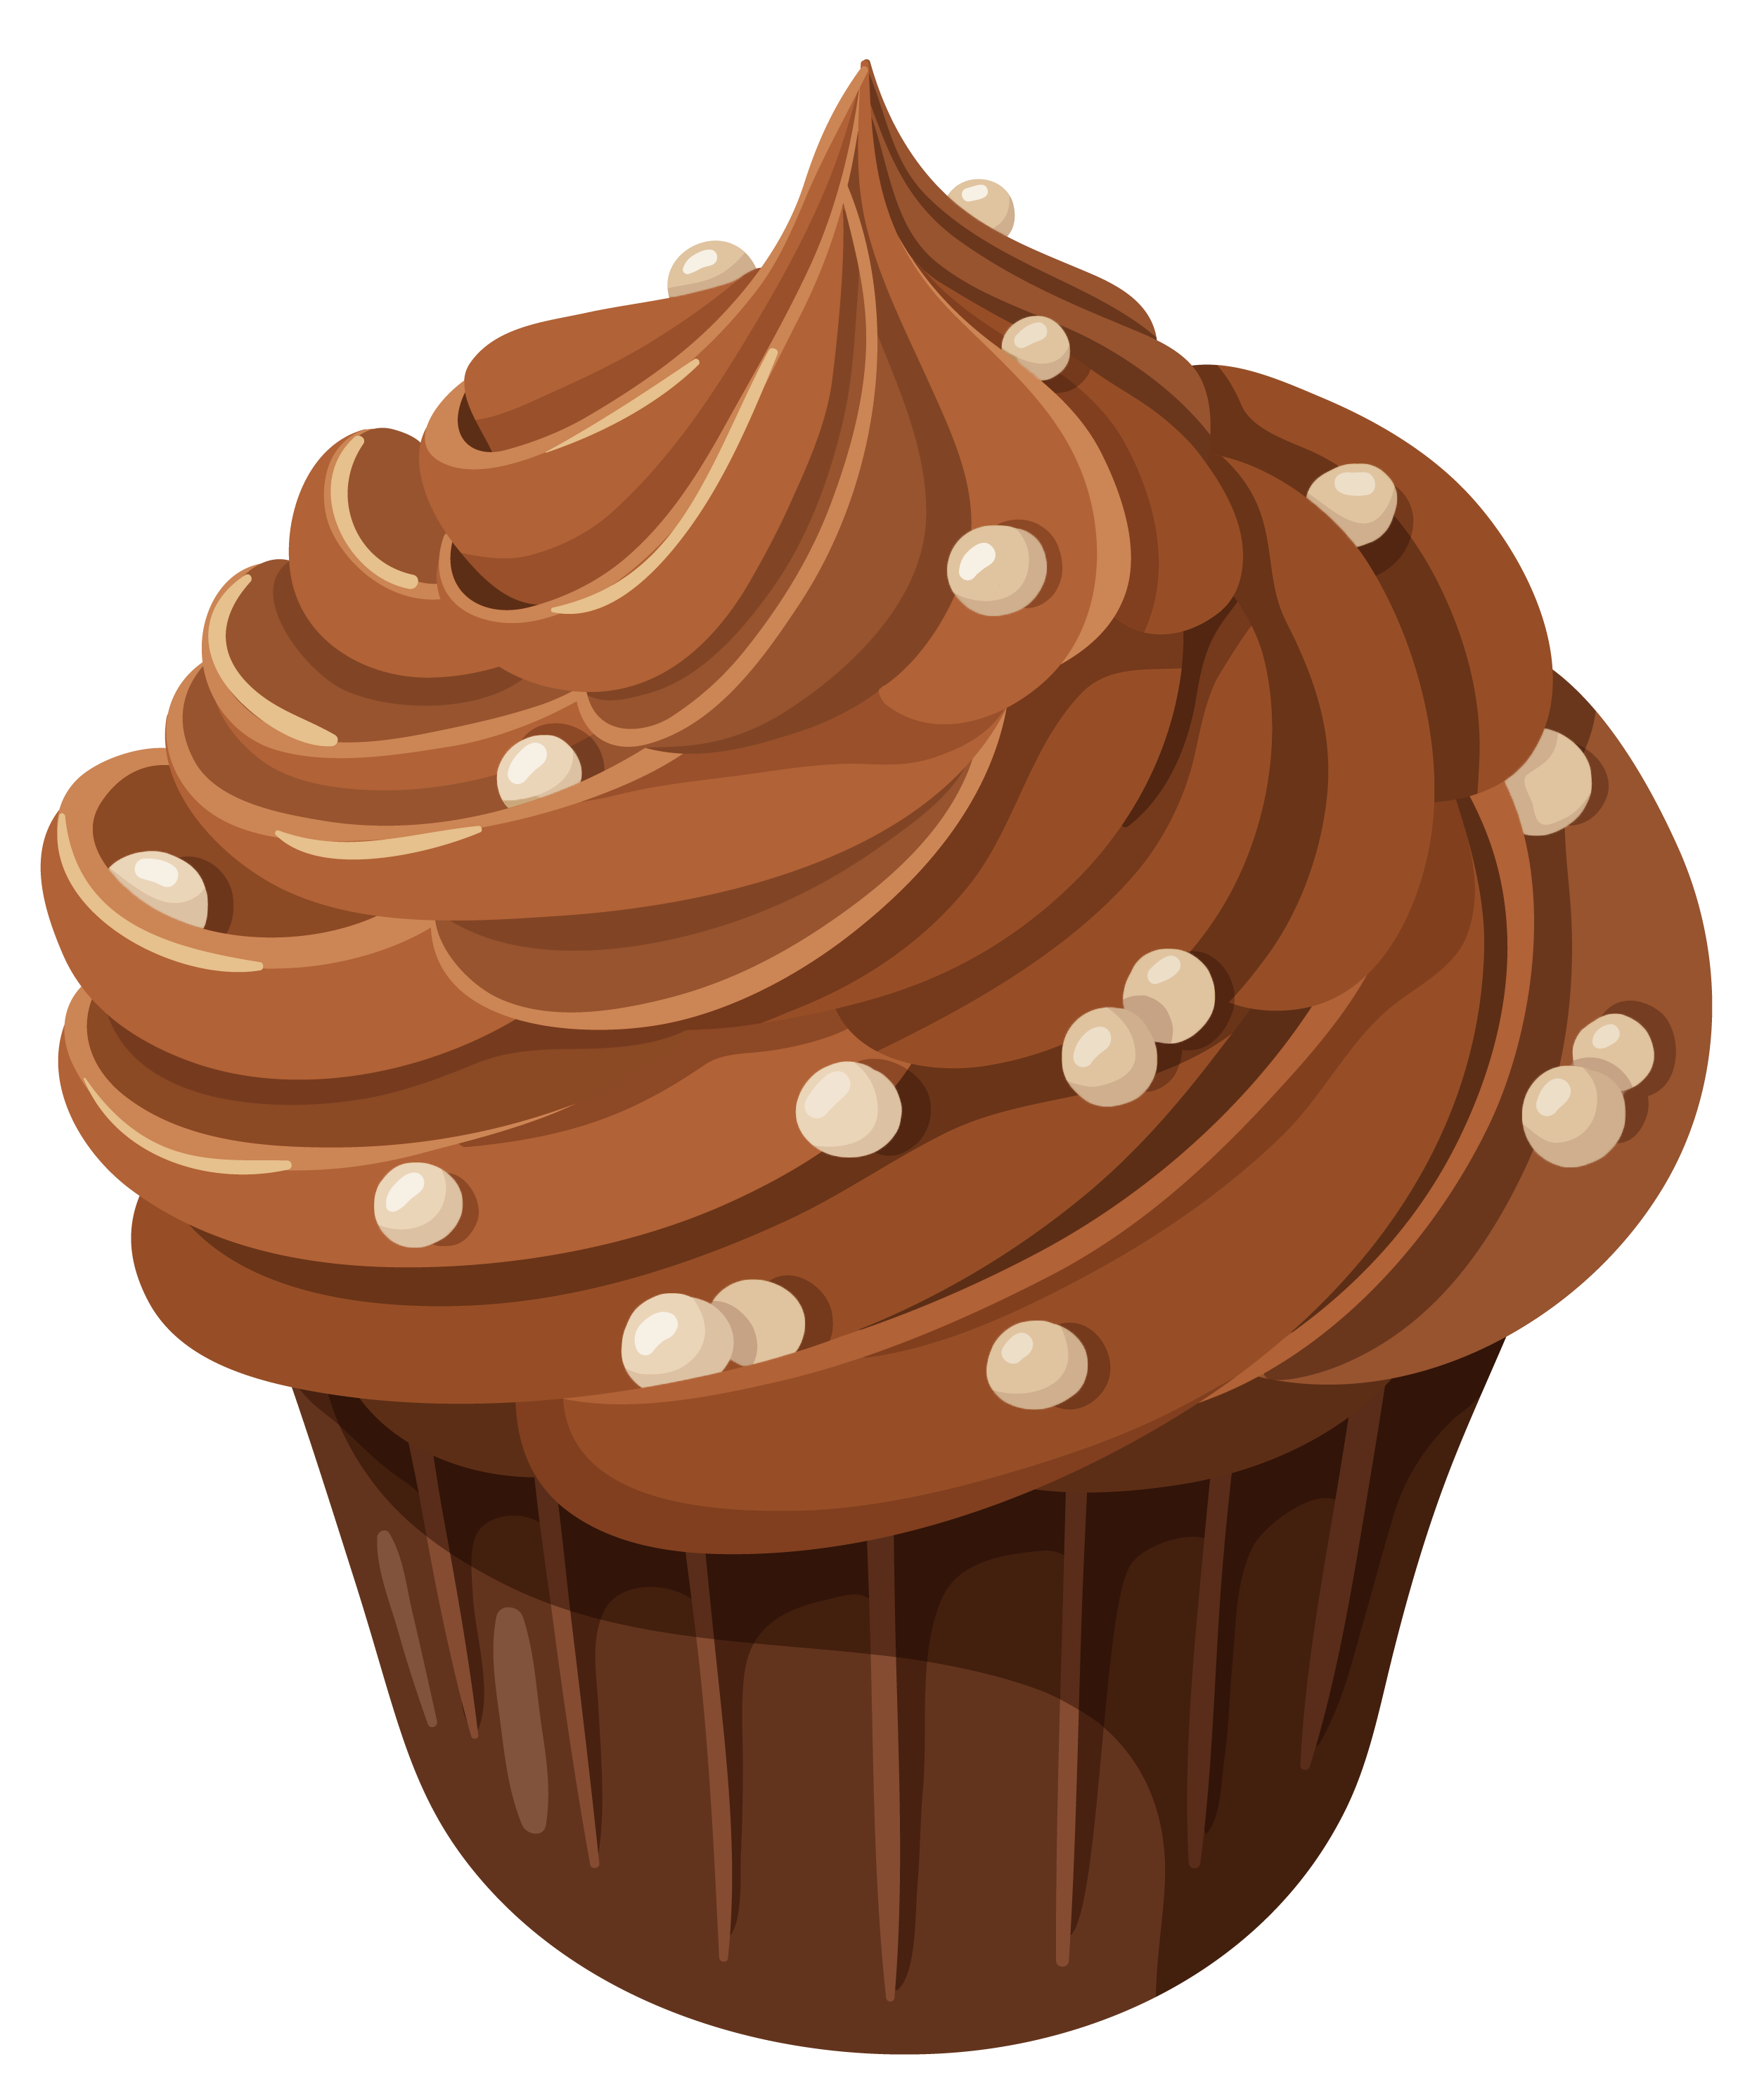 Chocolate clipart clear background. Cake png